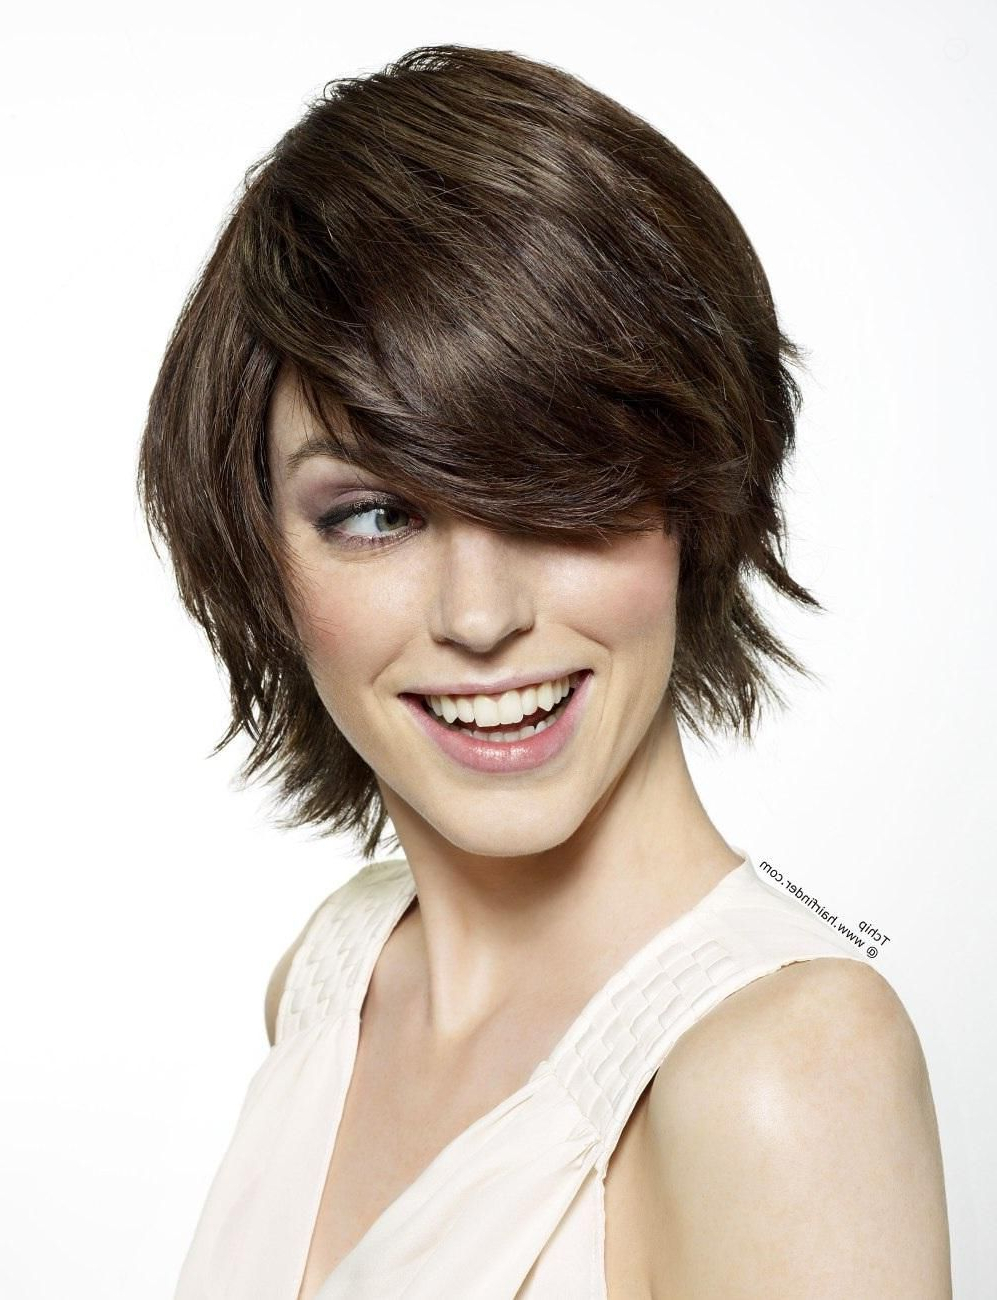 Short Hairstyles Low Maintenance | Fashionista | Pinterest | Short Within Low Maintenance Short Haircuts (View 16 of 25)